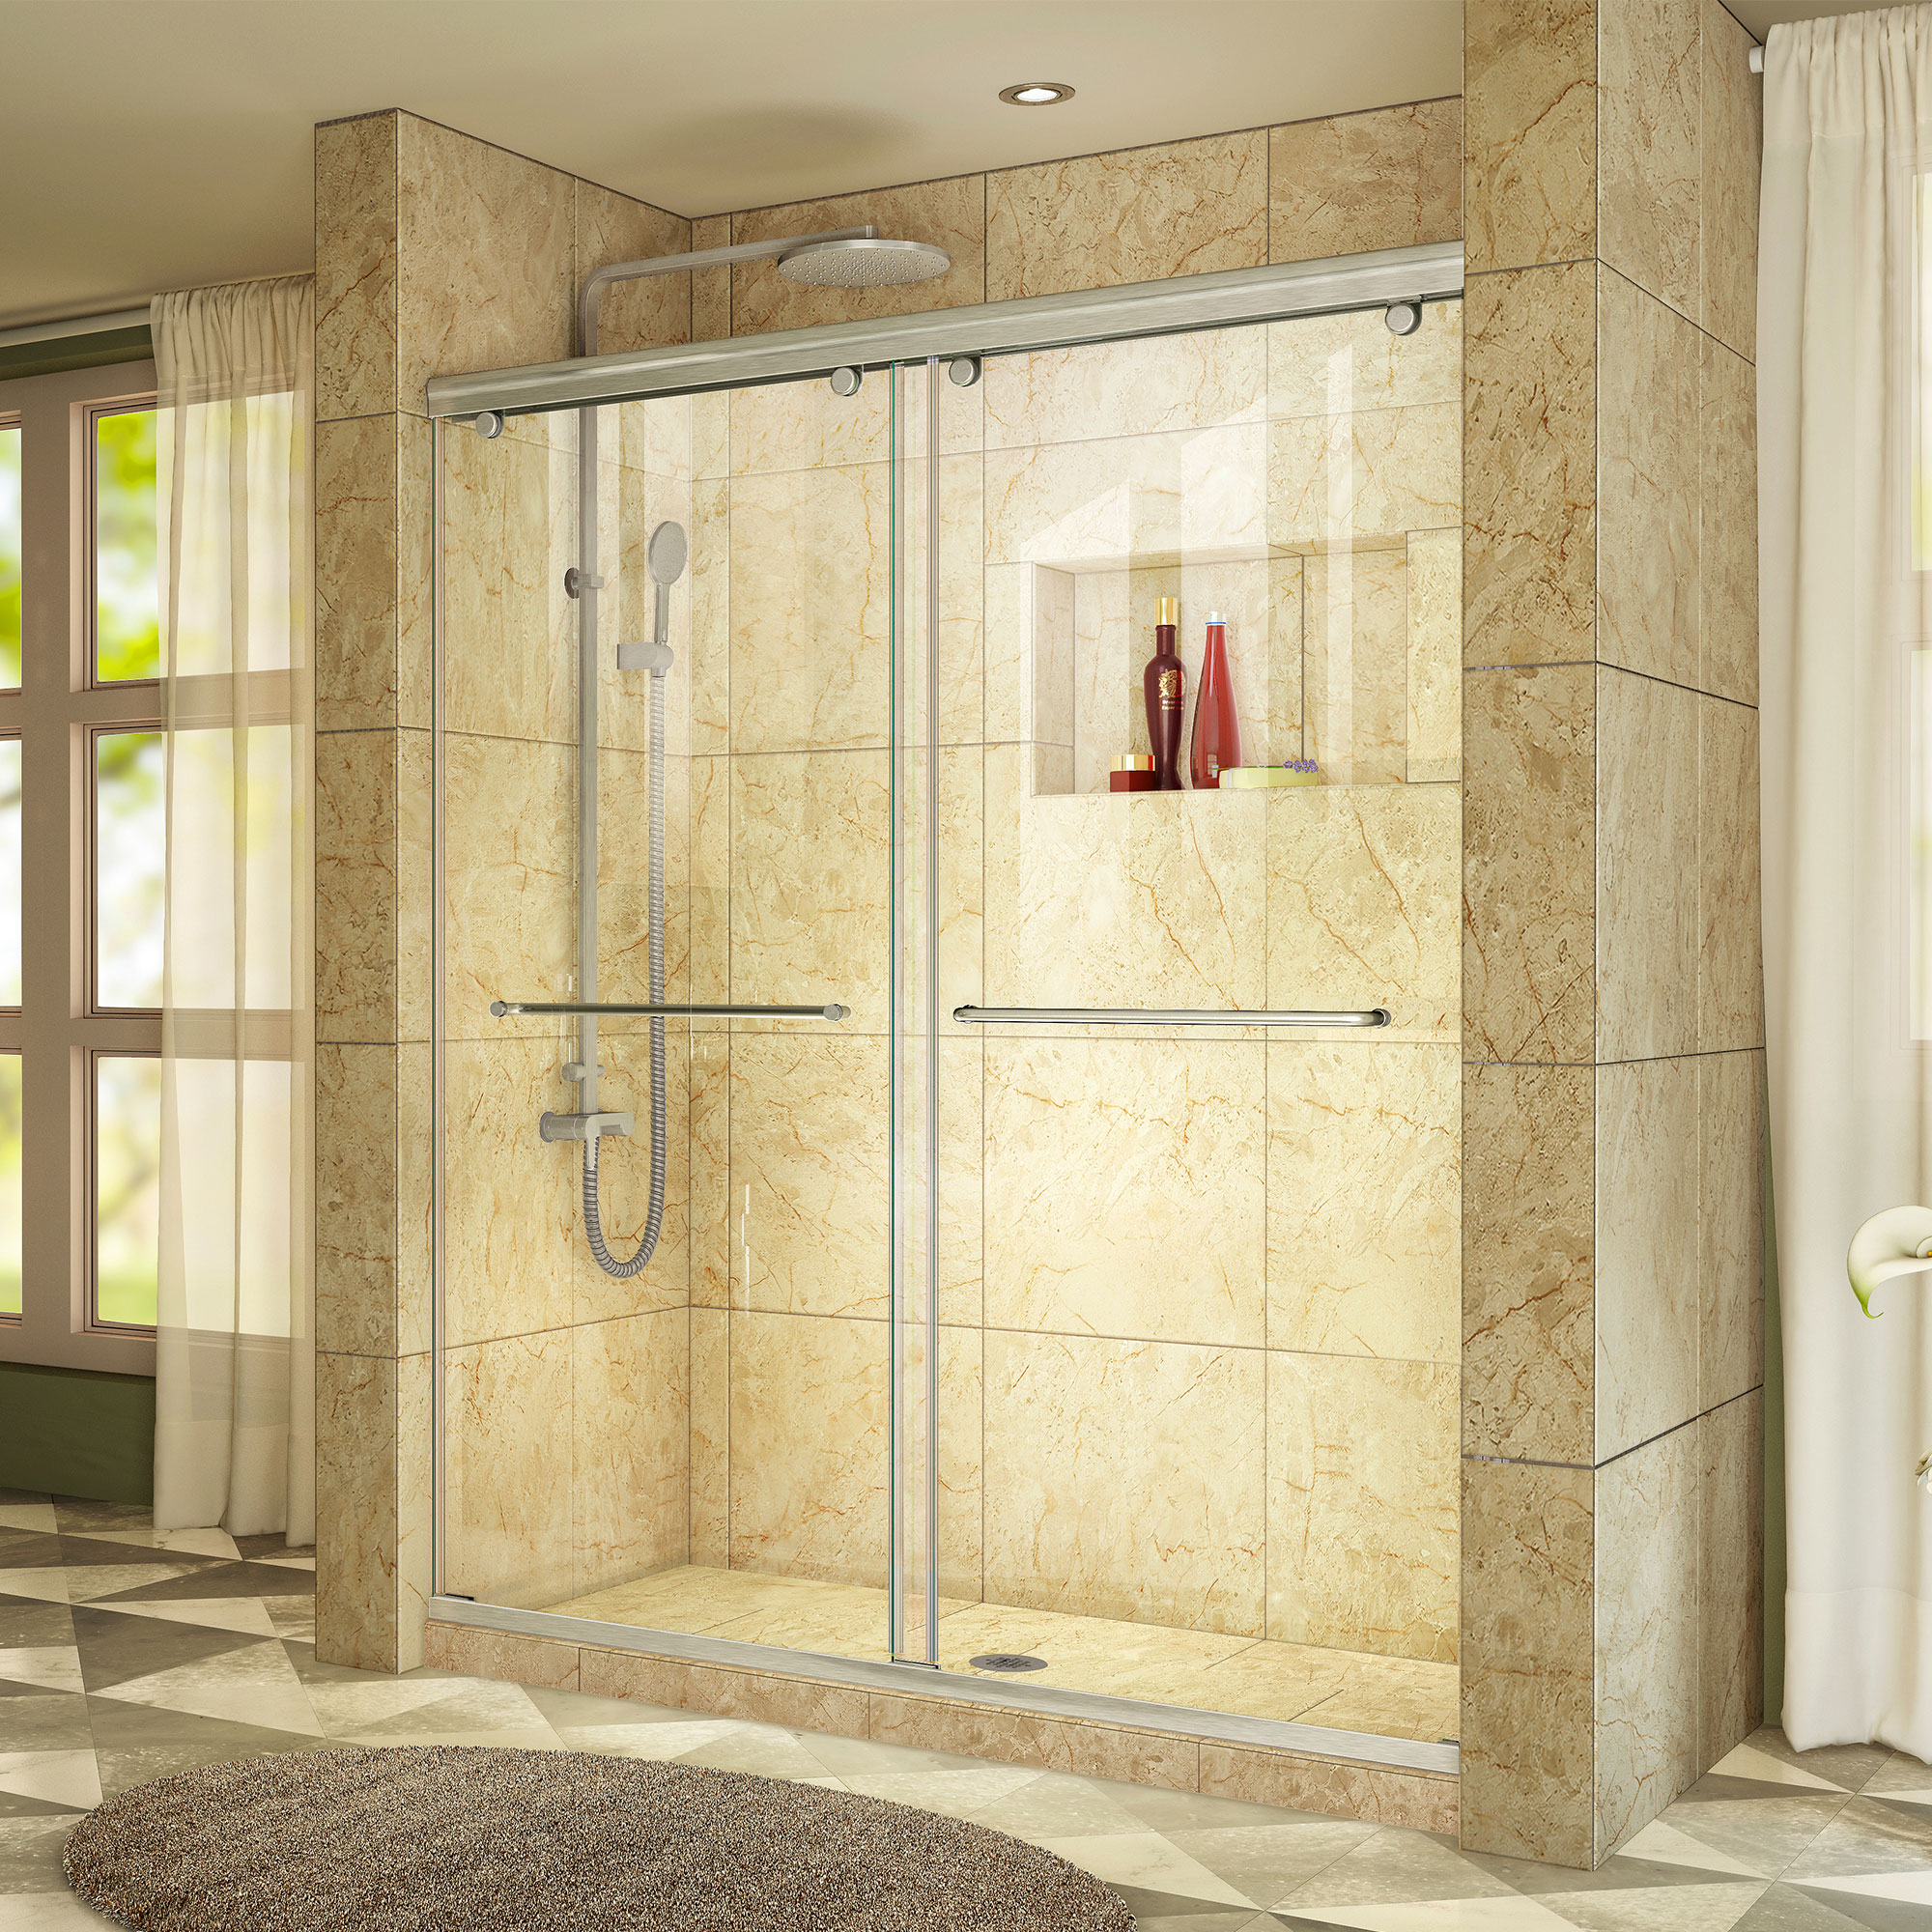 Dreamline Shdr 1360760 04 Charisma 56 60 X 76 Inch Sliding Shower